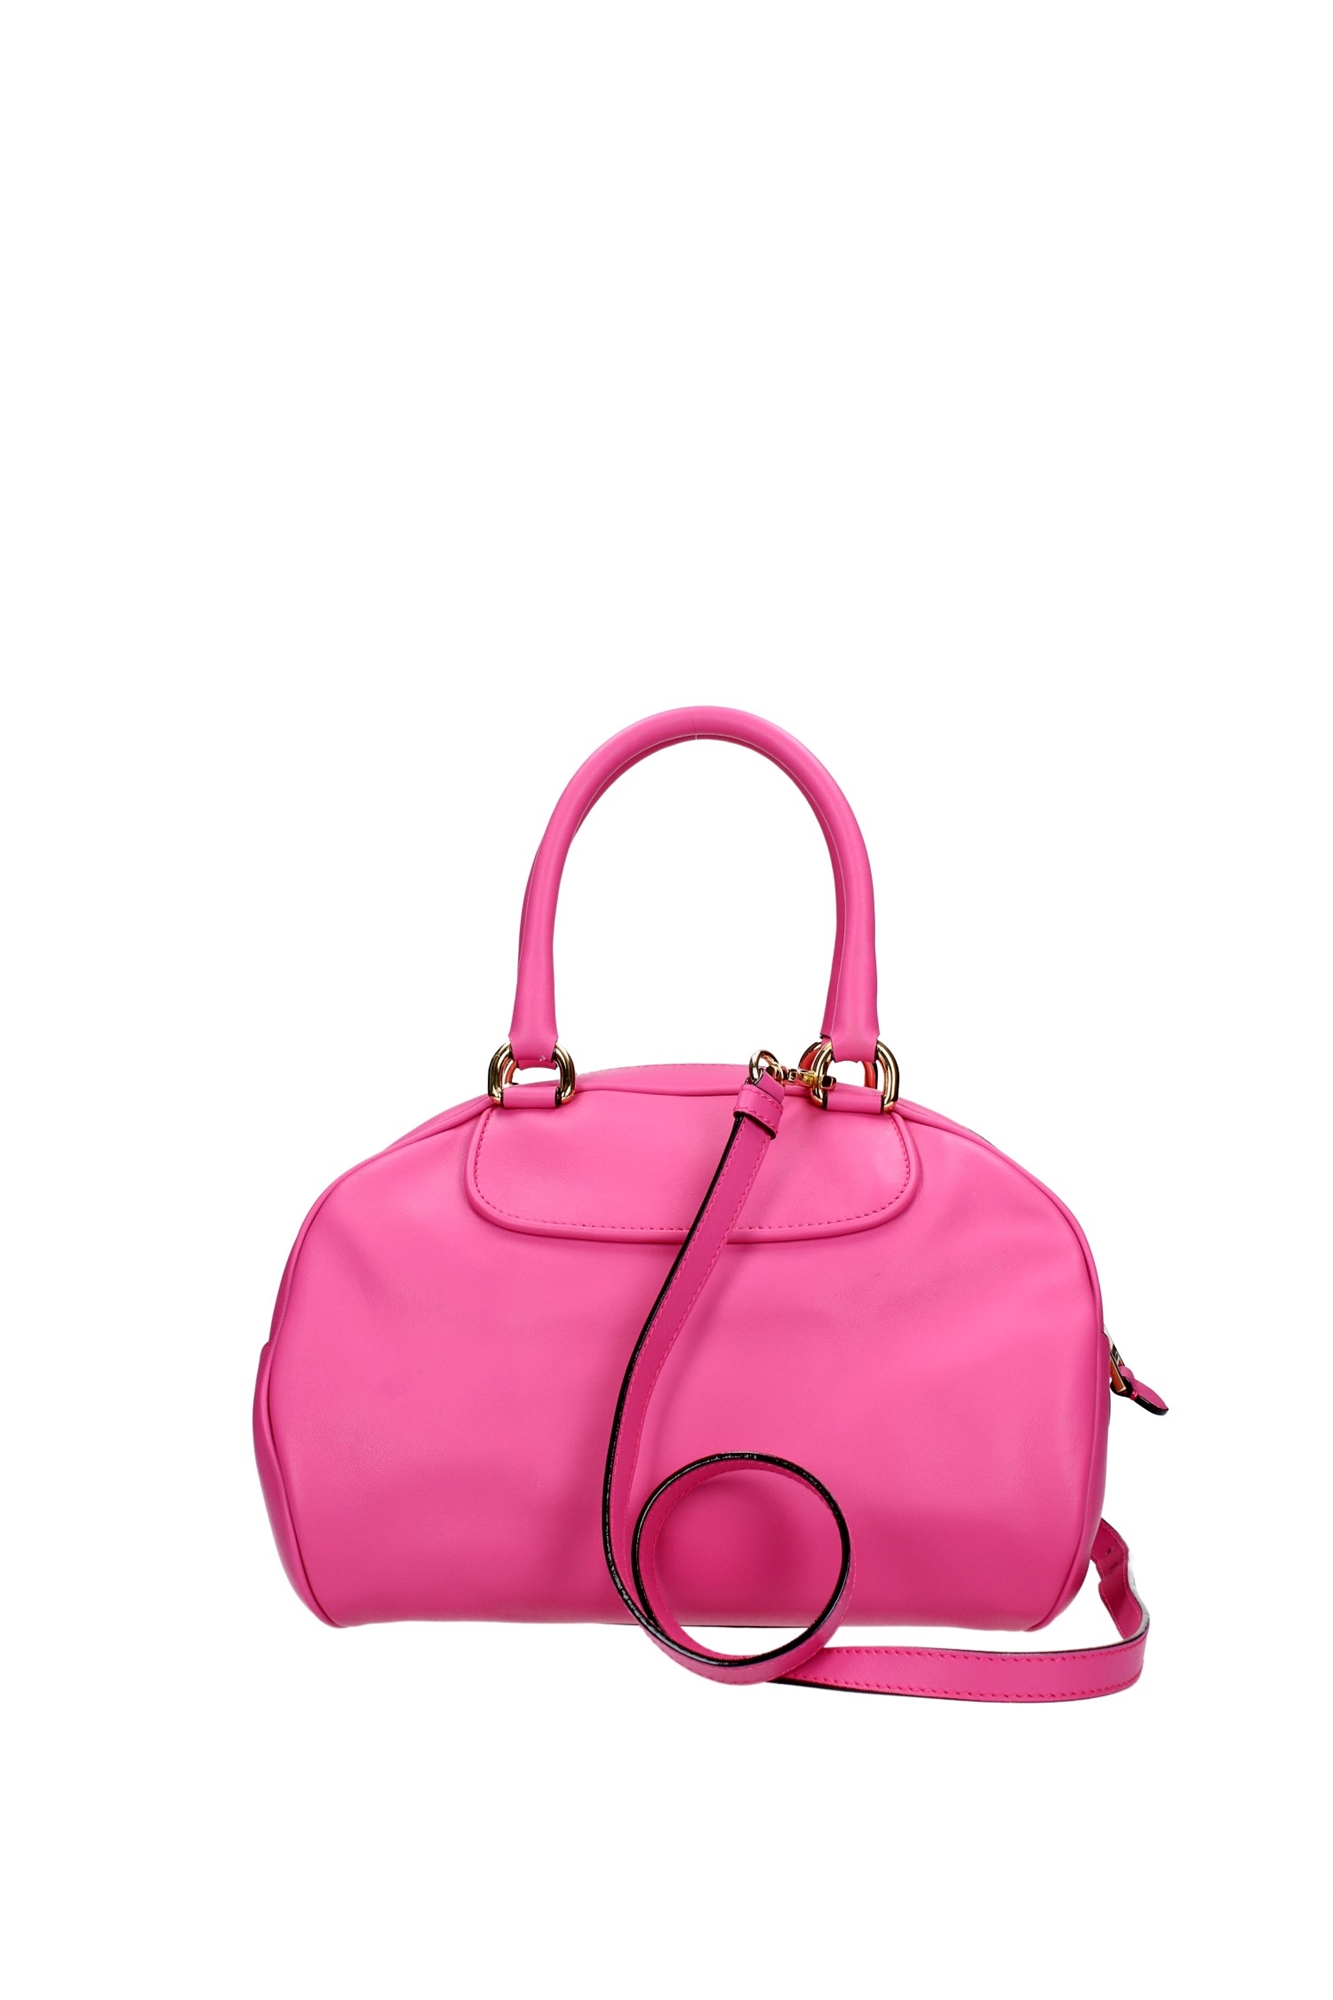 bowling bags moschino women leather fuchsia a748880010209 ebay. Black Bedroom Furniture Sets. Home Design Ideas